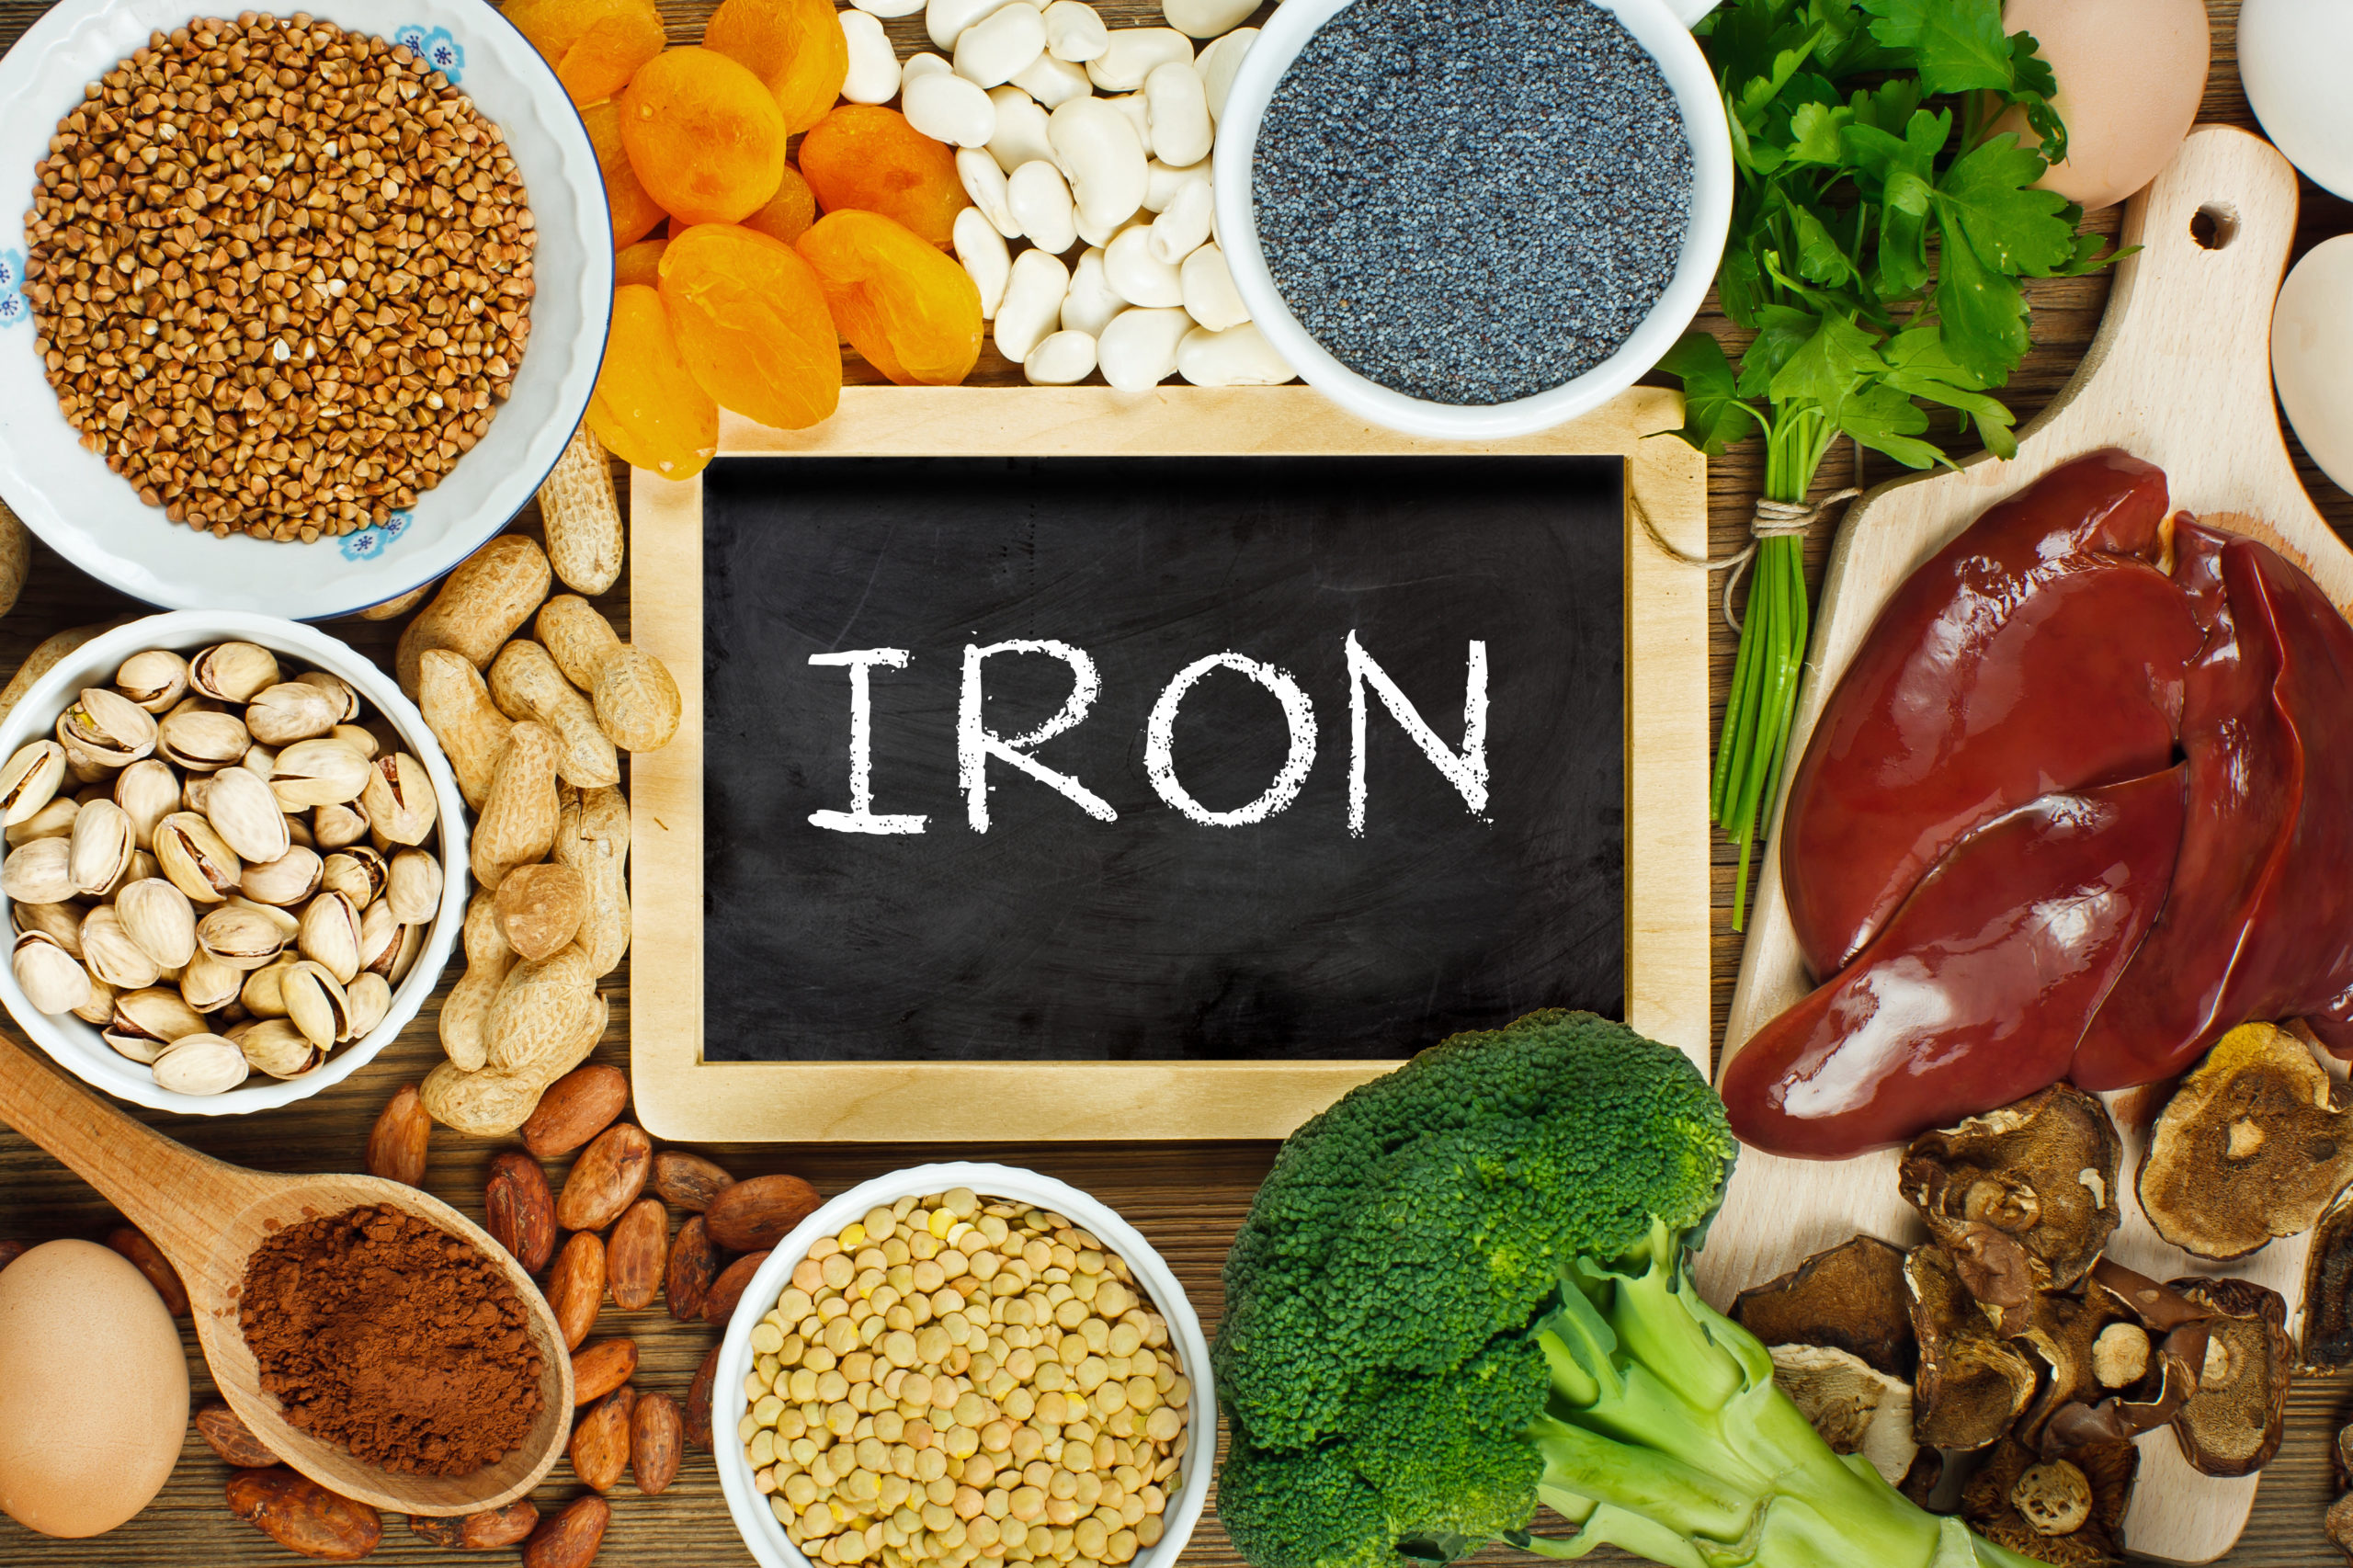 A selection of foods on the table with a sign that reads iron